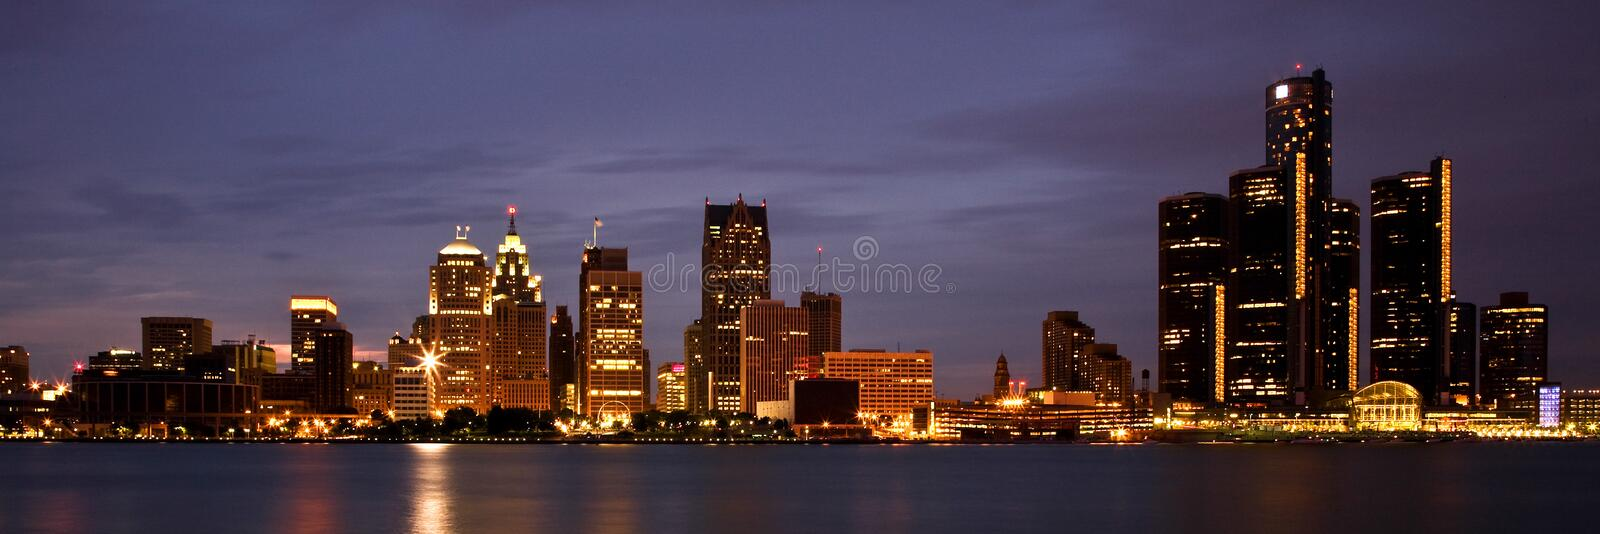 Detroit Michigan Skyline royalty free stock photos